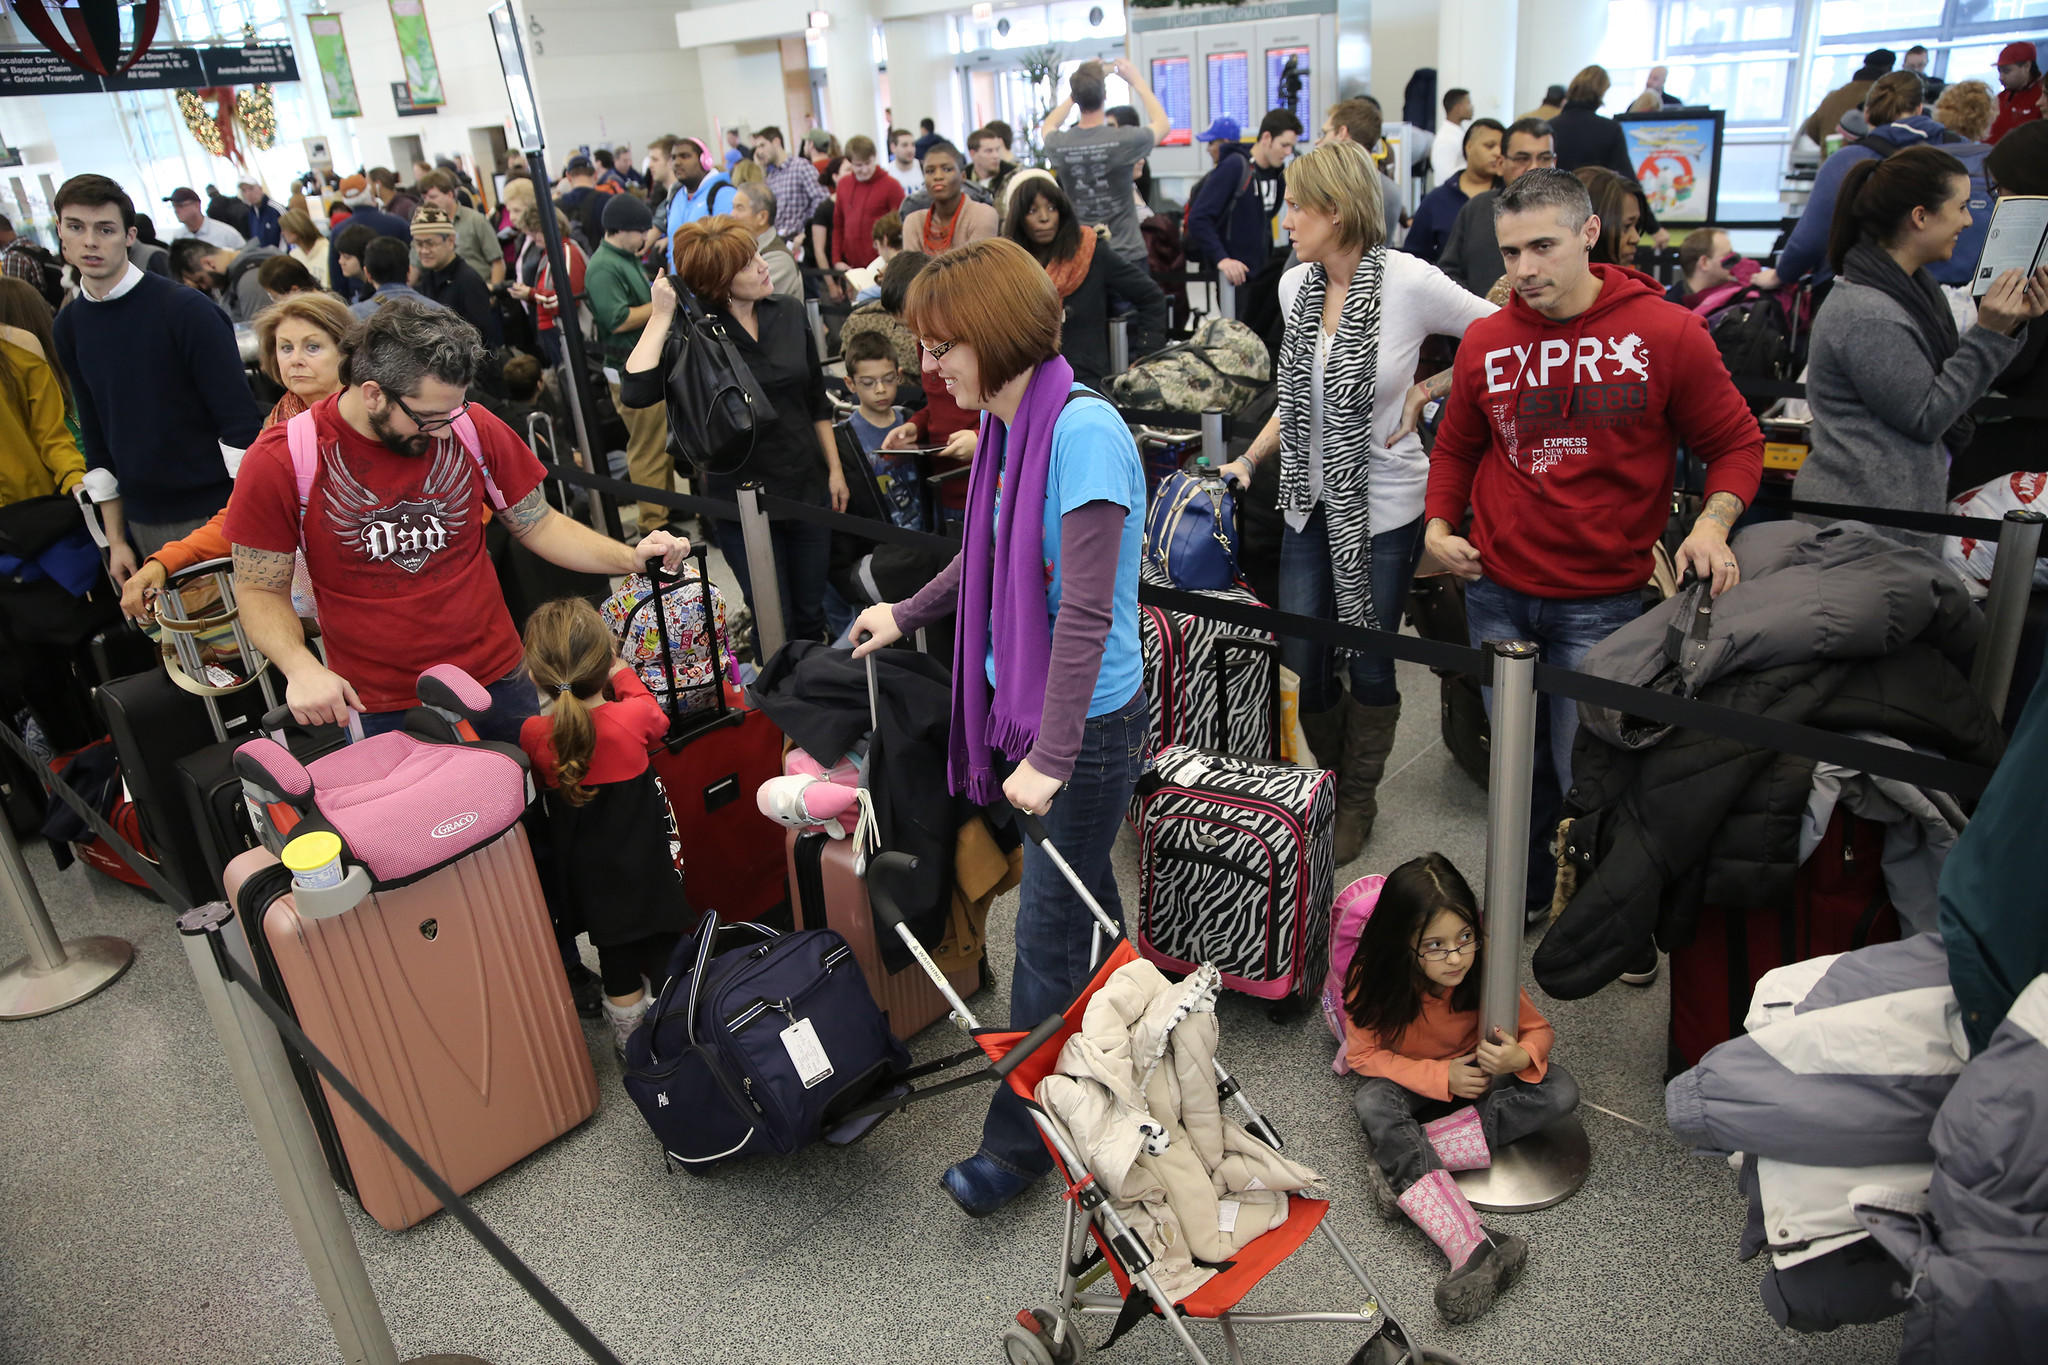 Hundreds of travelers wait in line for check in at Midway Airport, Friday, Jan. 3, 2014.